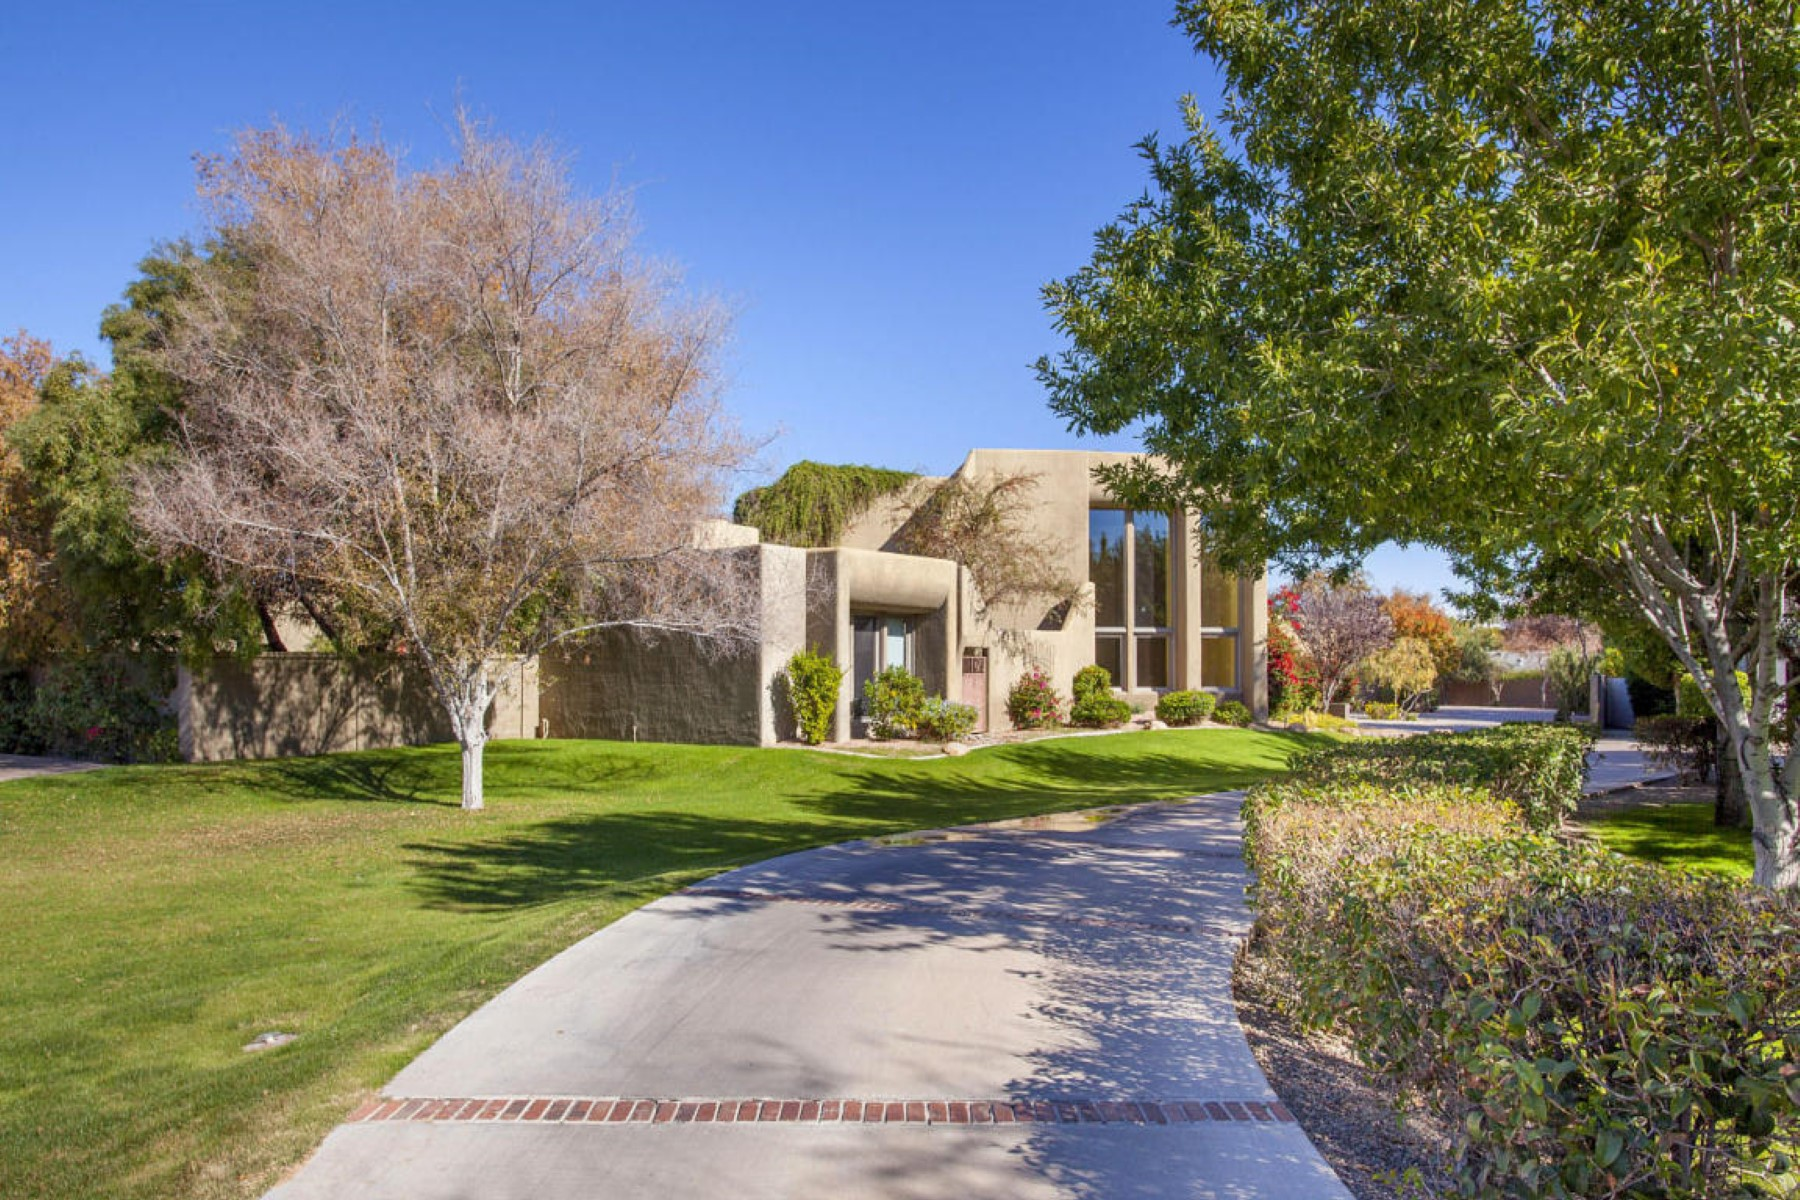 Single Family Home for Sale at An amazing gated 1.41 acre estate in the heart of Arcadia 4357 N 66Tth St Scottsdale, Arizona, 85251 United States